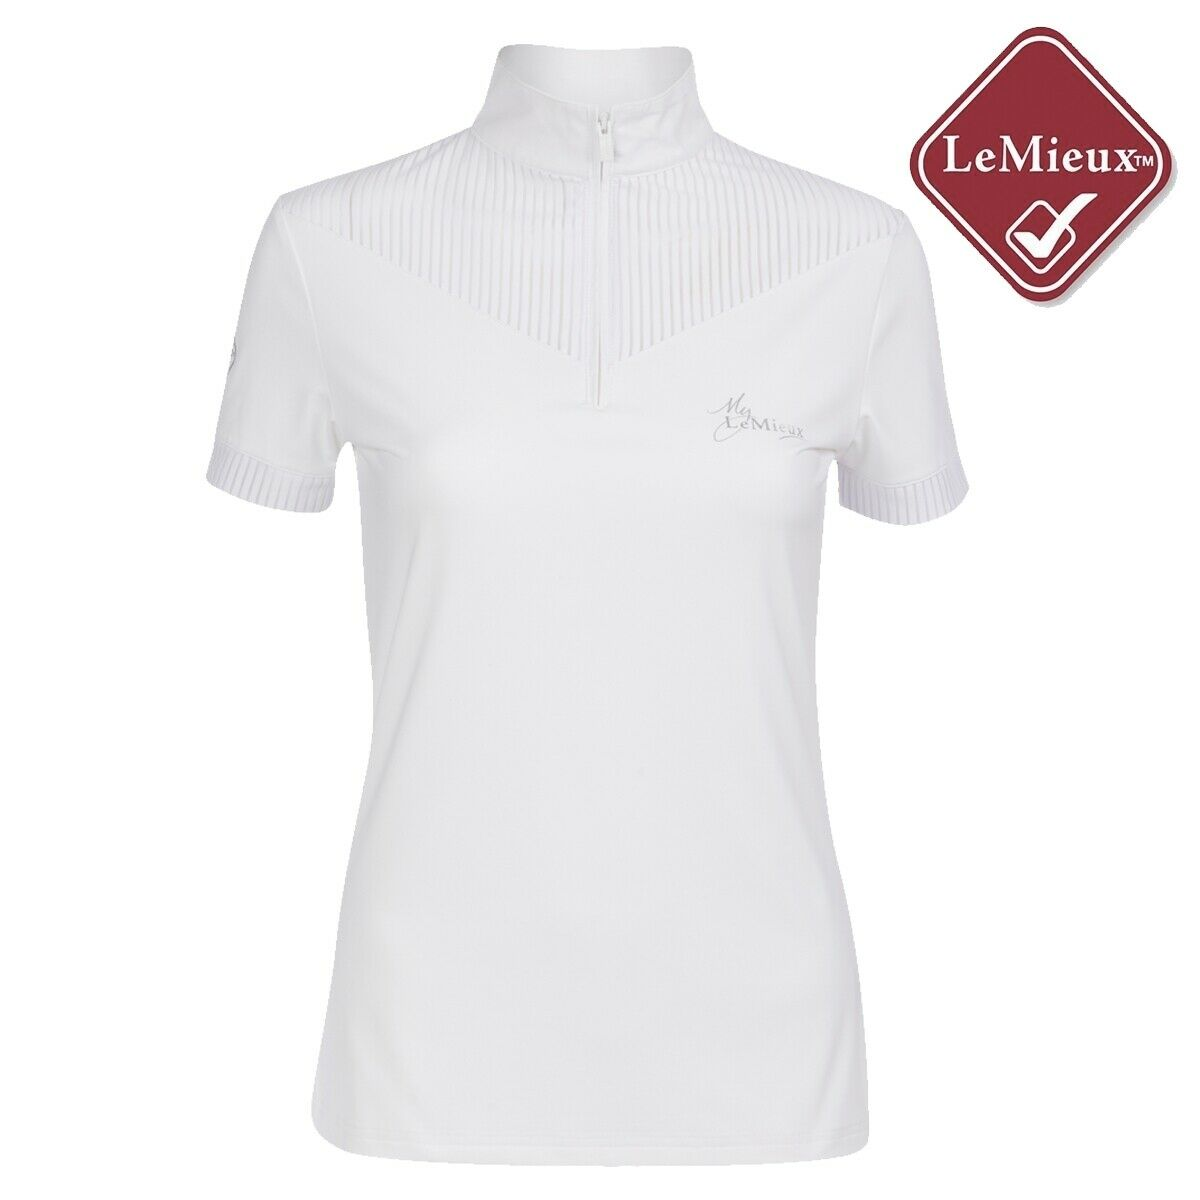 My LeMieux Adrina Show Shirt - White - Free UK Shipping